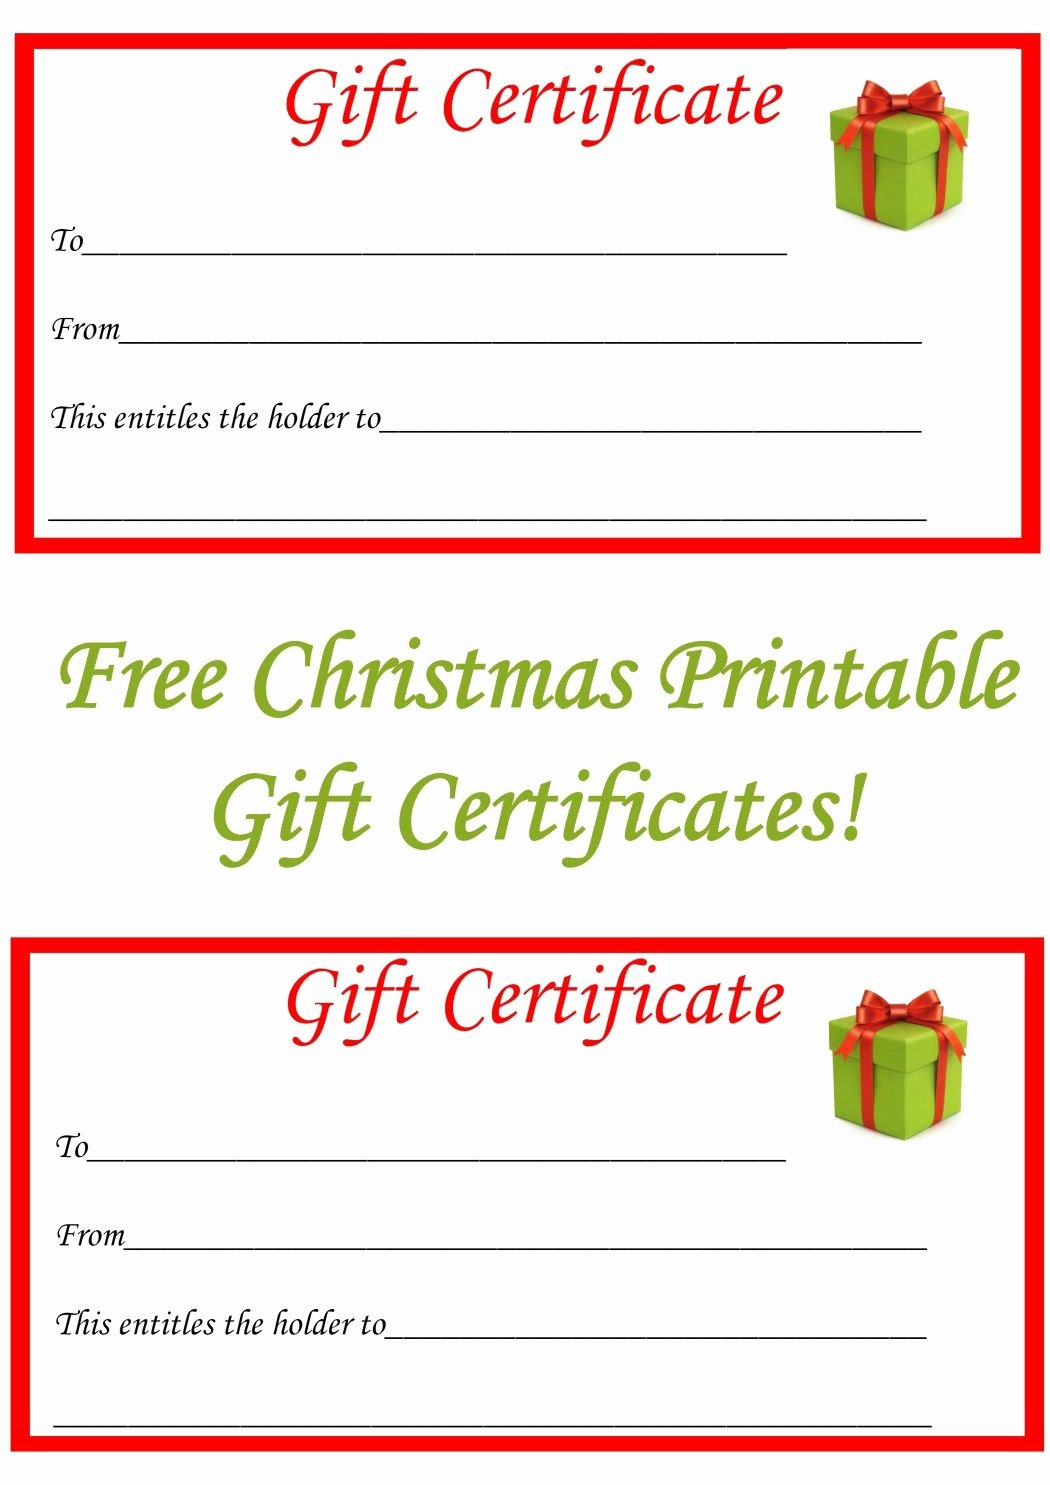 Gift Certificate Template Word Free Awesome Best 25 Printable T Certificates Ideas On Pinterest